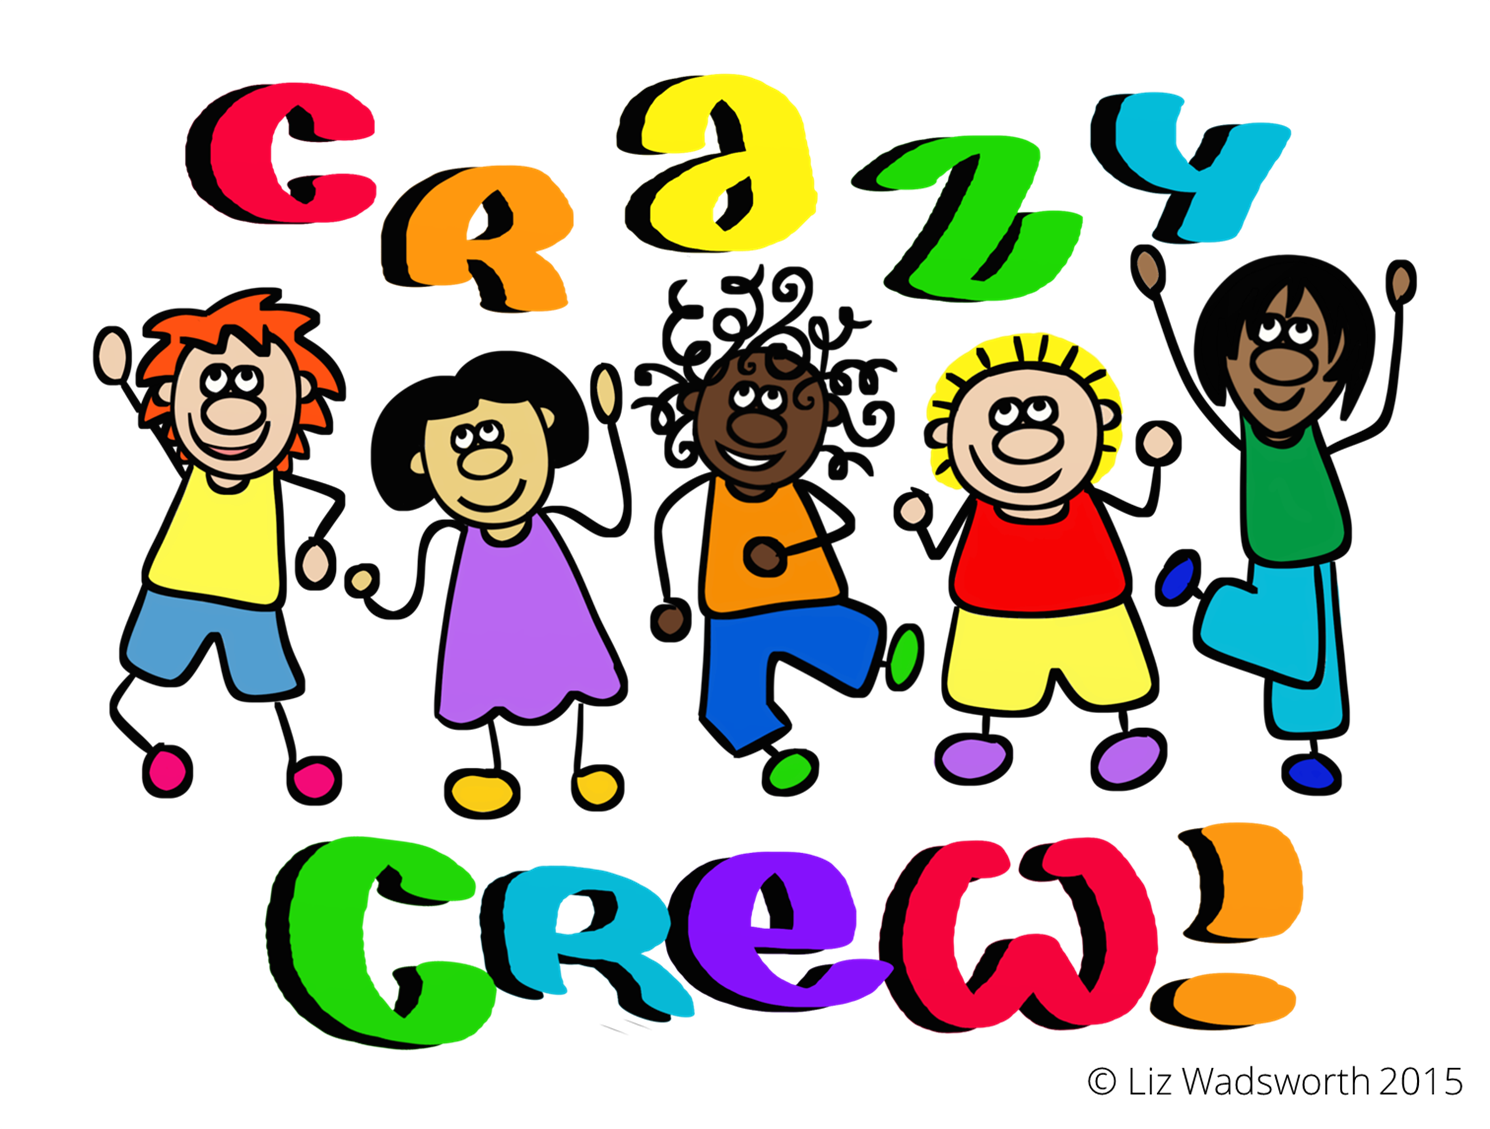 Crazy Crew (for ages 8-11)